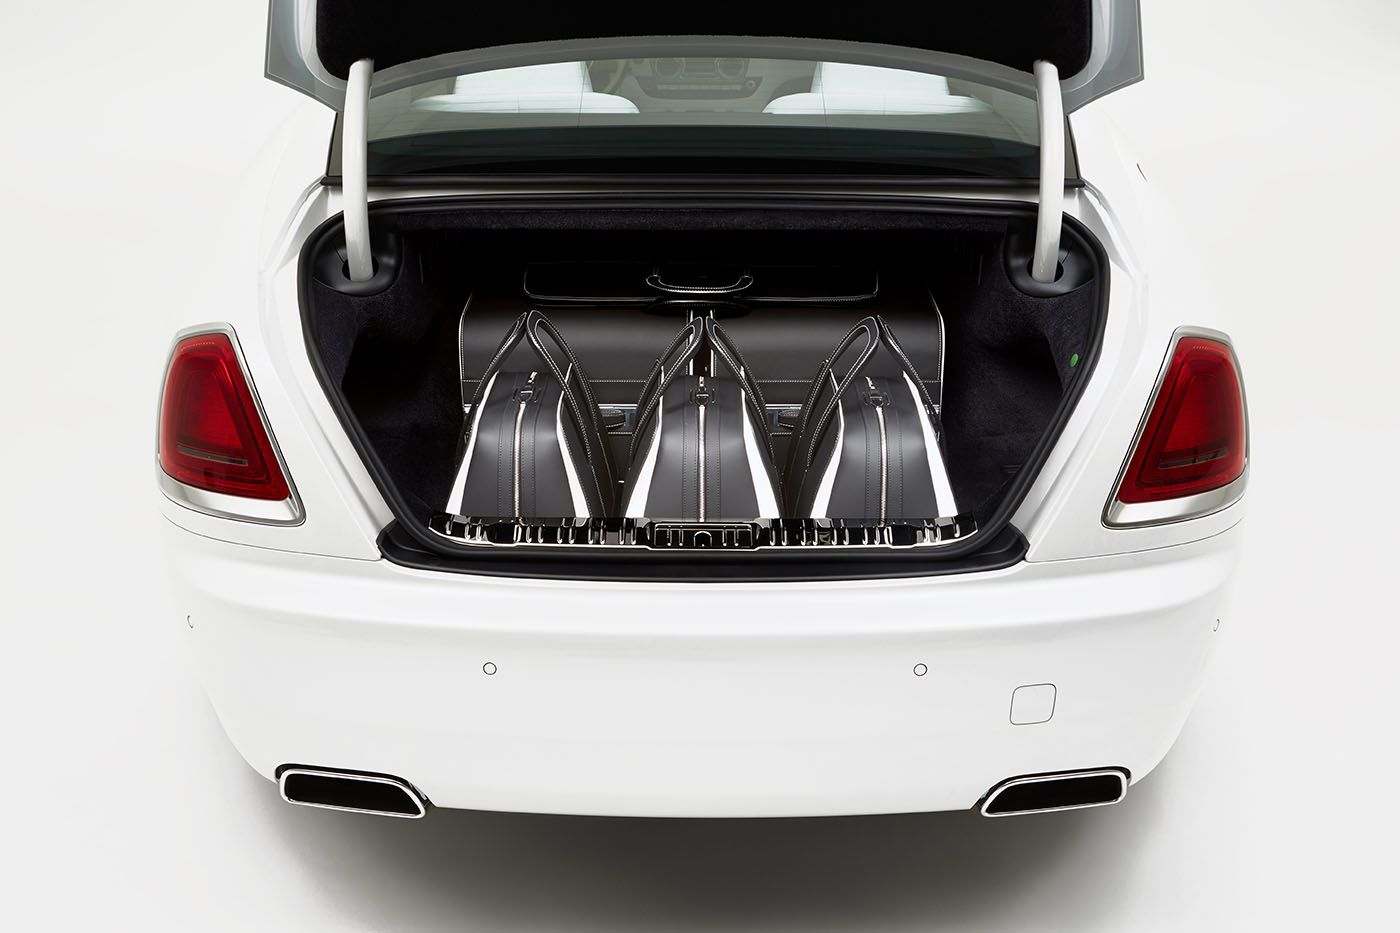 rolls-royce-wraith-luggage-collection-2016-1